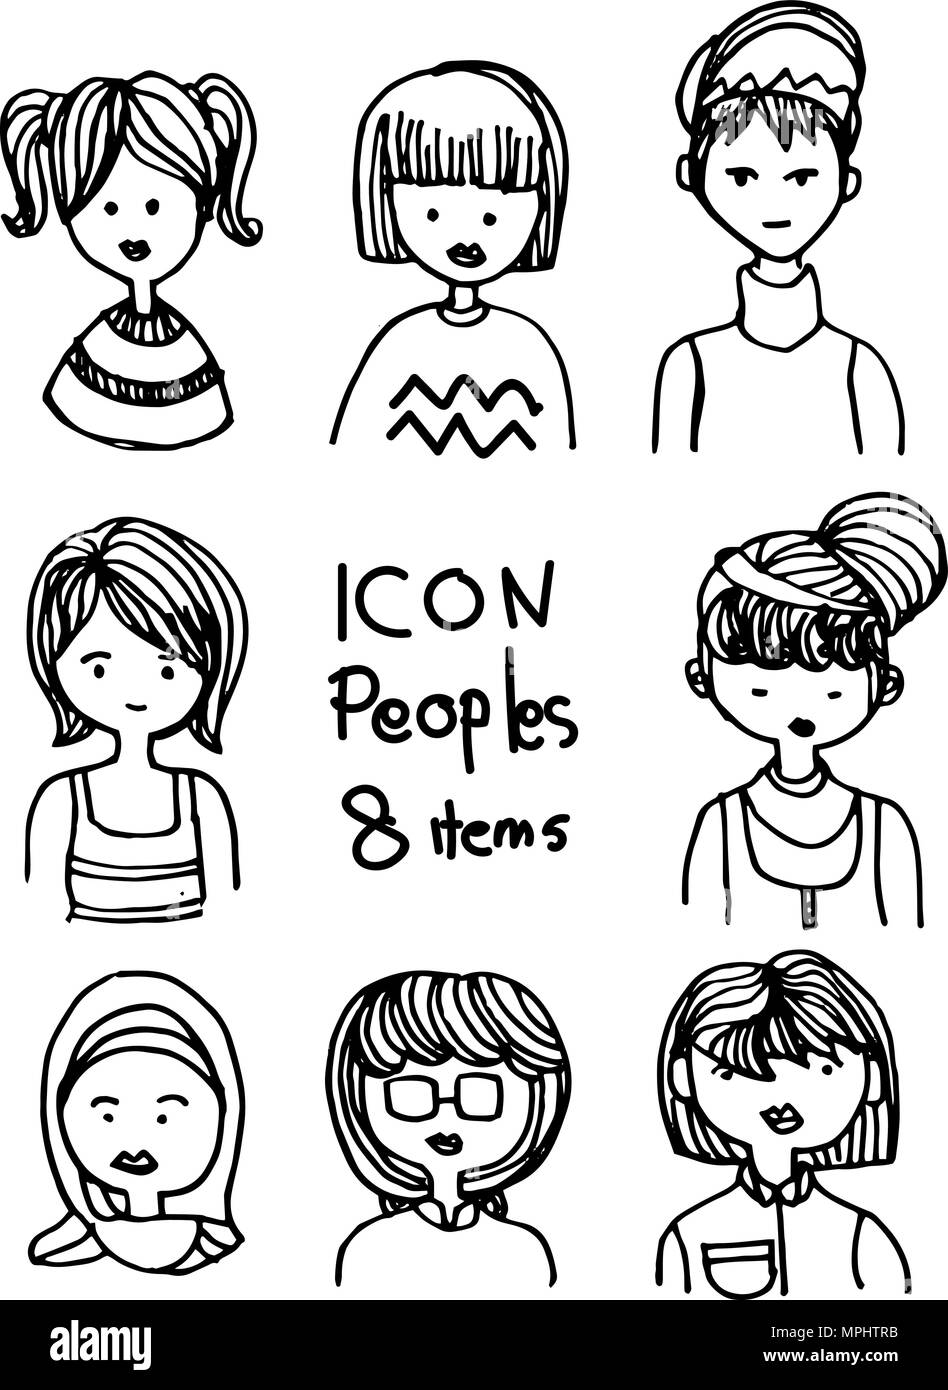 Avatar of peoples in drawing doodle style